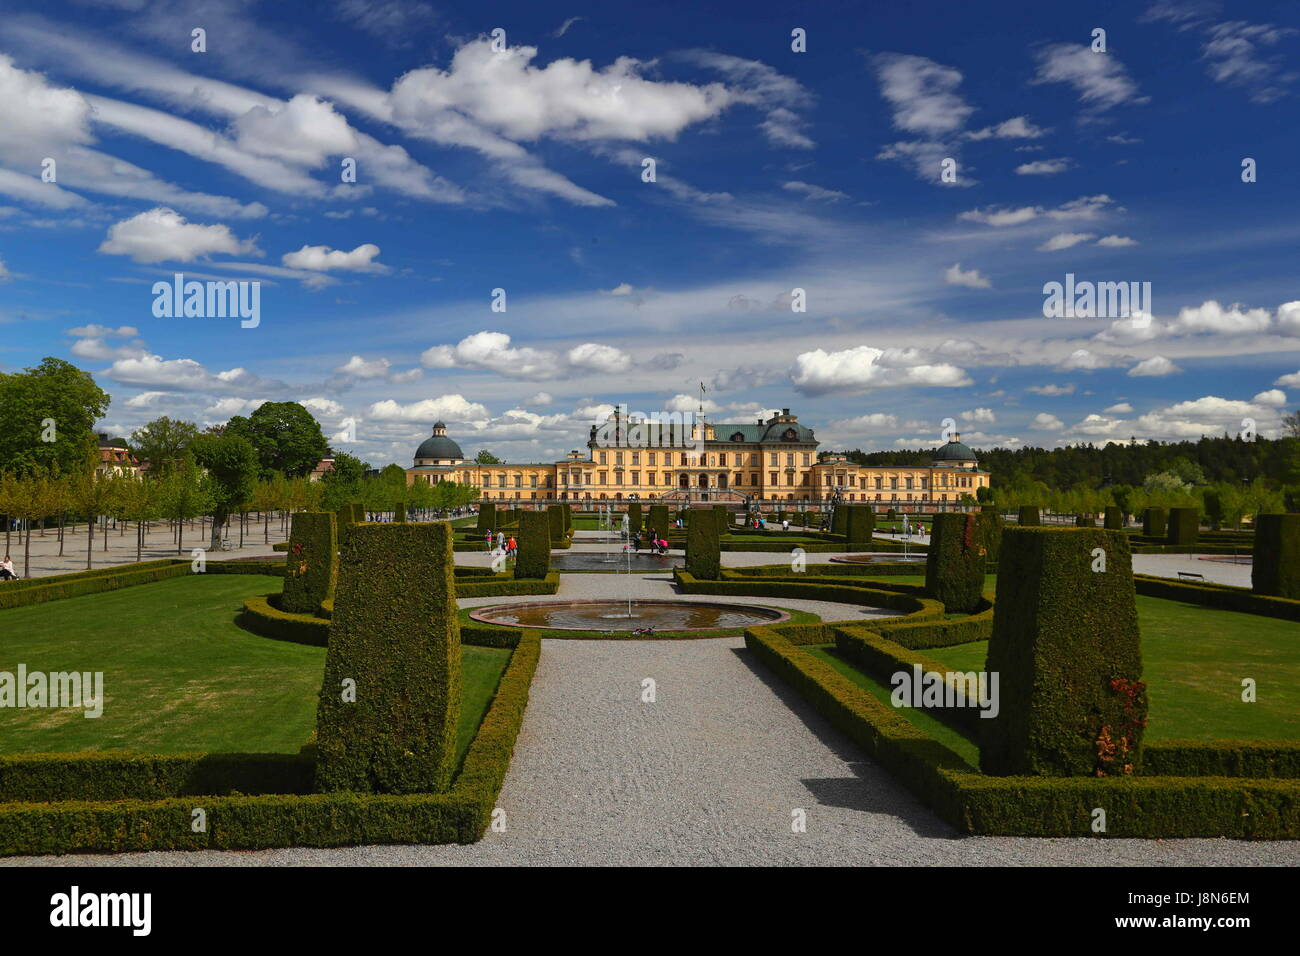 Brussels. 25th May, 2017. Photo taken on May 25, 2017 shows the view of the Royal Domain of Drottningholm located - Stock Image